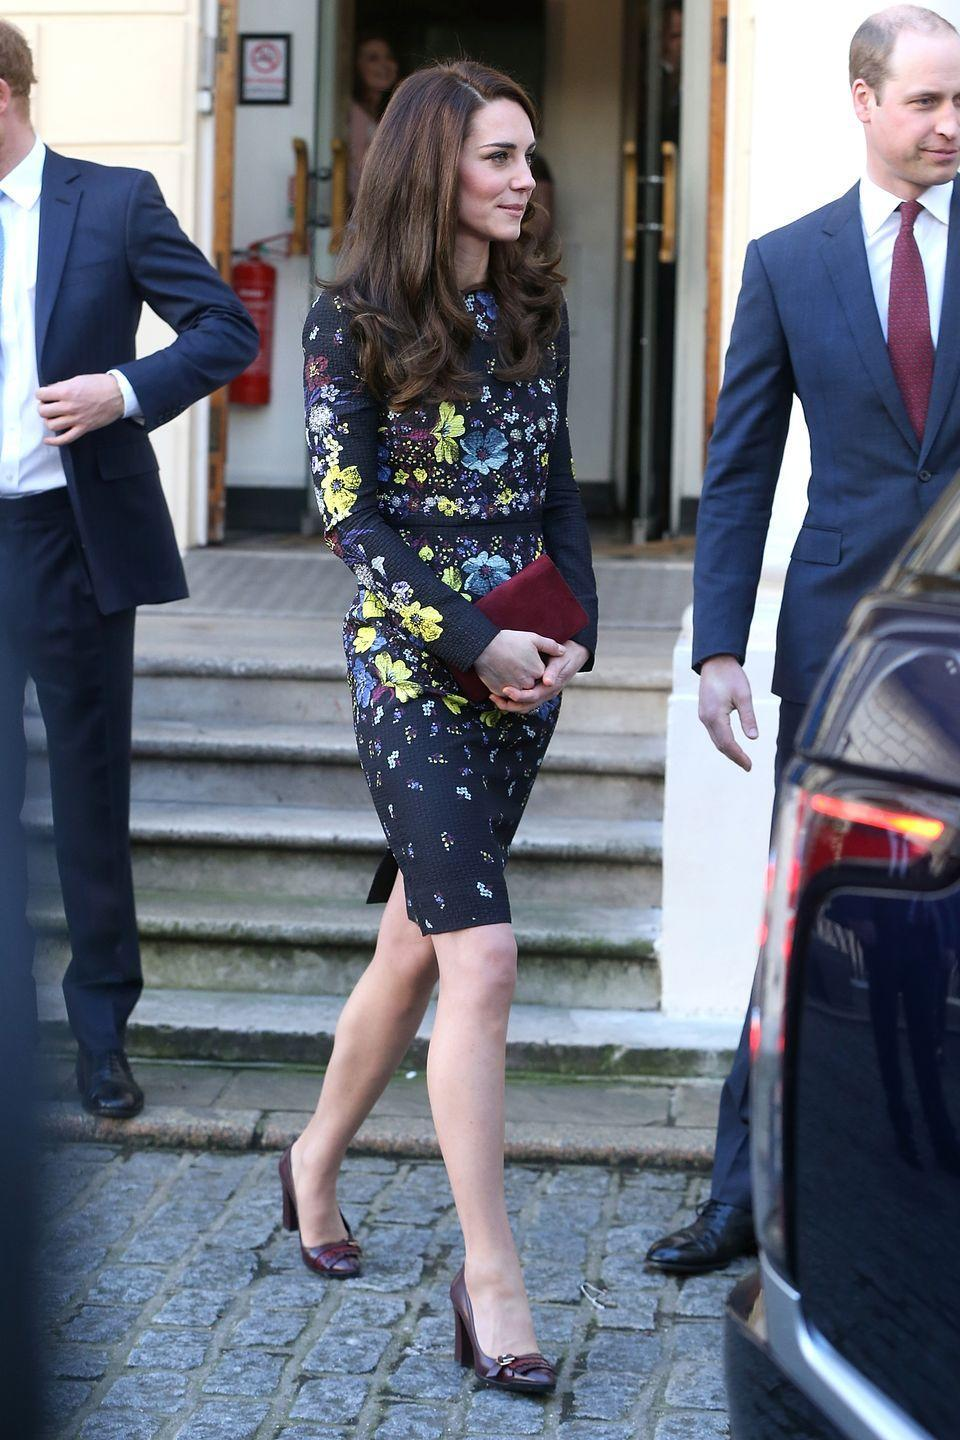 <p>Middleton wears a navy floral dress by Erdem, oxblood pumps and a deep red suede clutch in London, where she, Prince William and Prince harry spoke about their work with the Heads Together organization.</p>